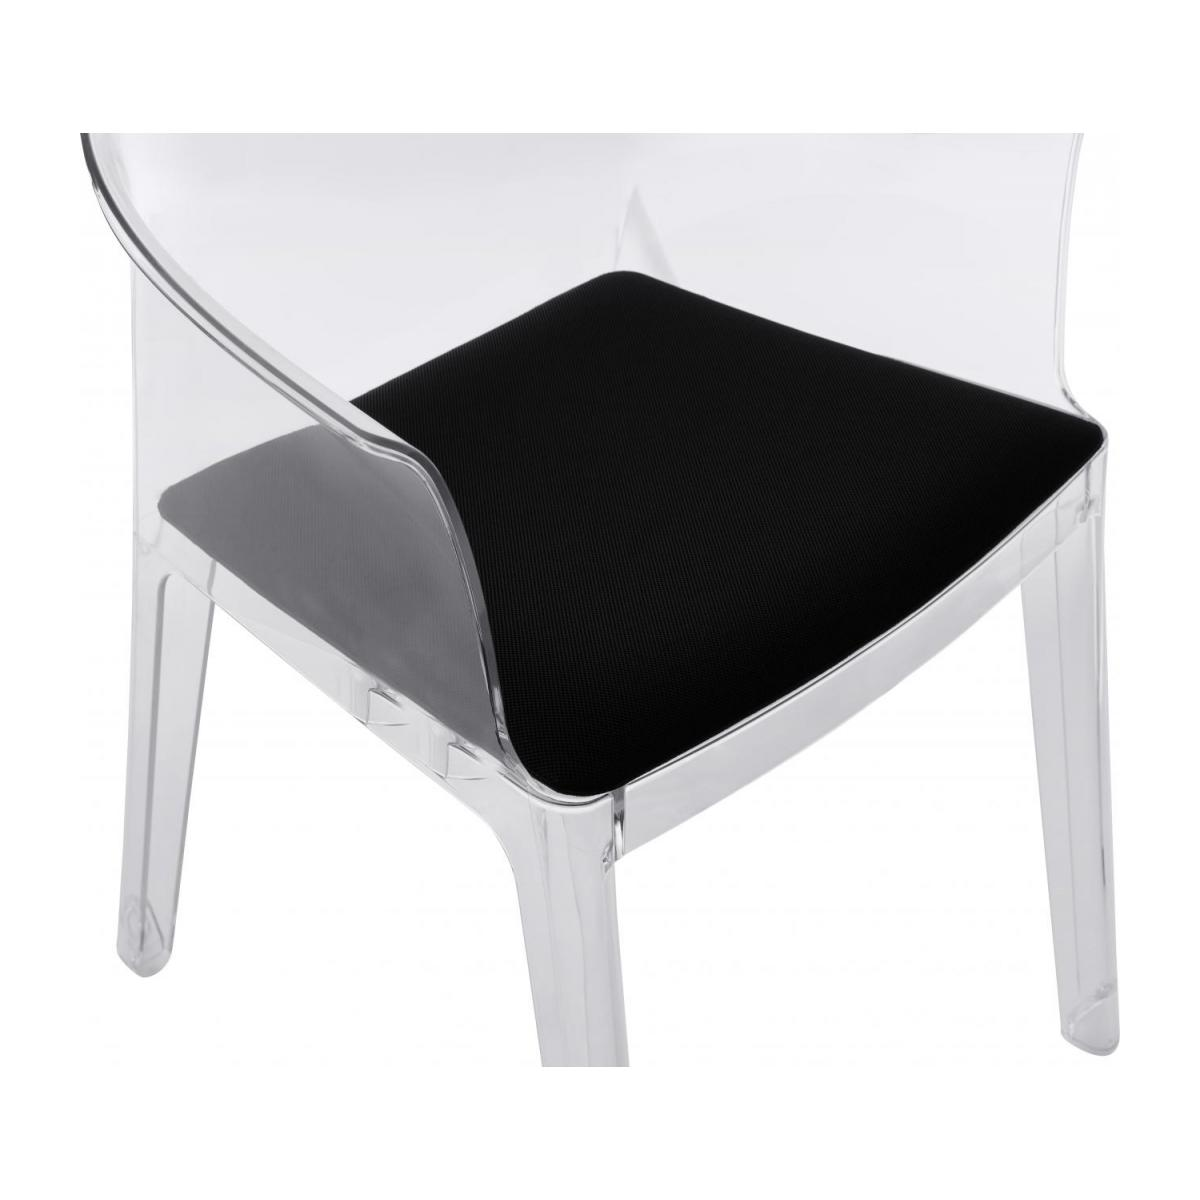 Transparent armchair in polycarbonate n°10